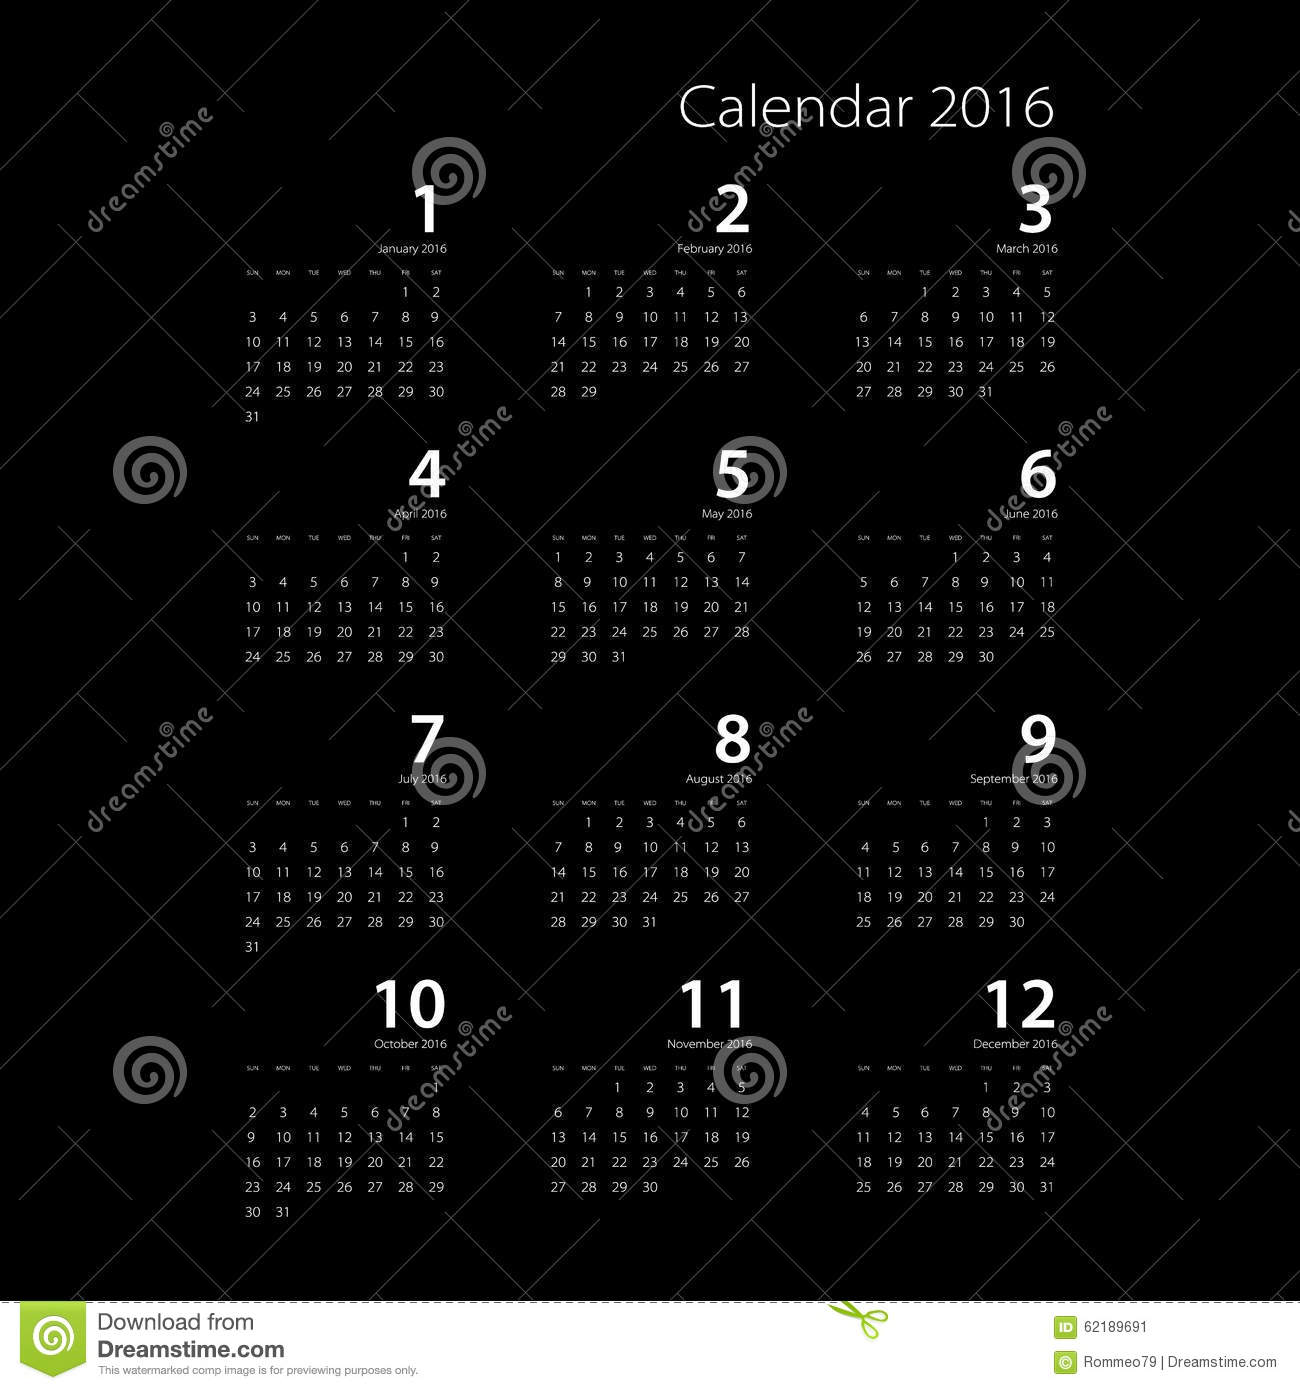 Calendar Background 2016 : Calendar for on black background vector eps stock